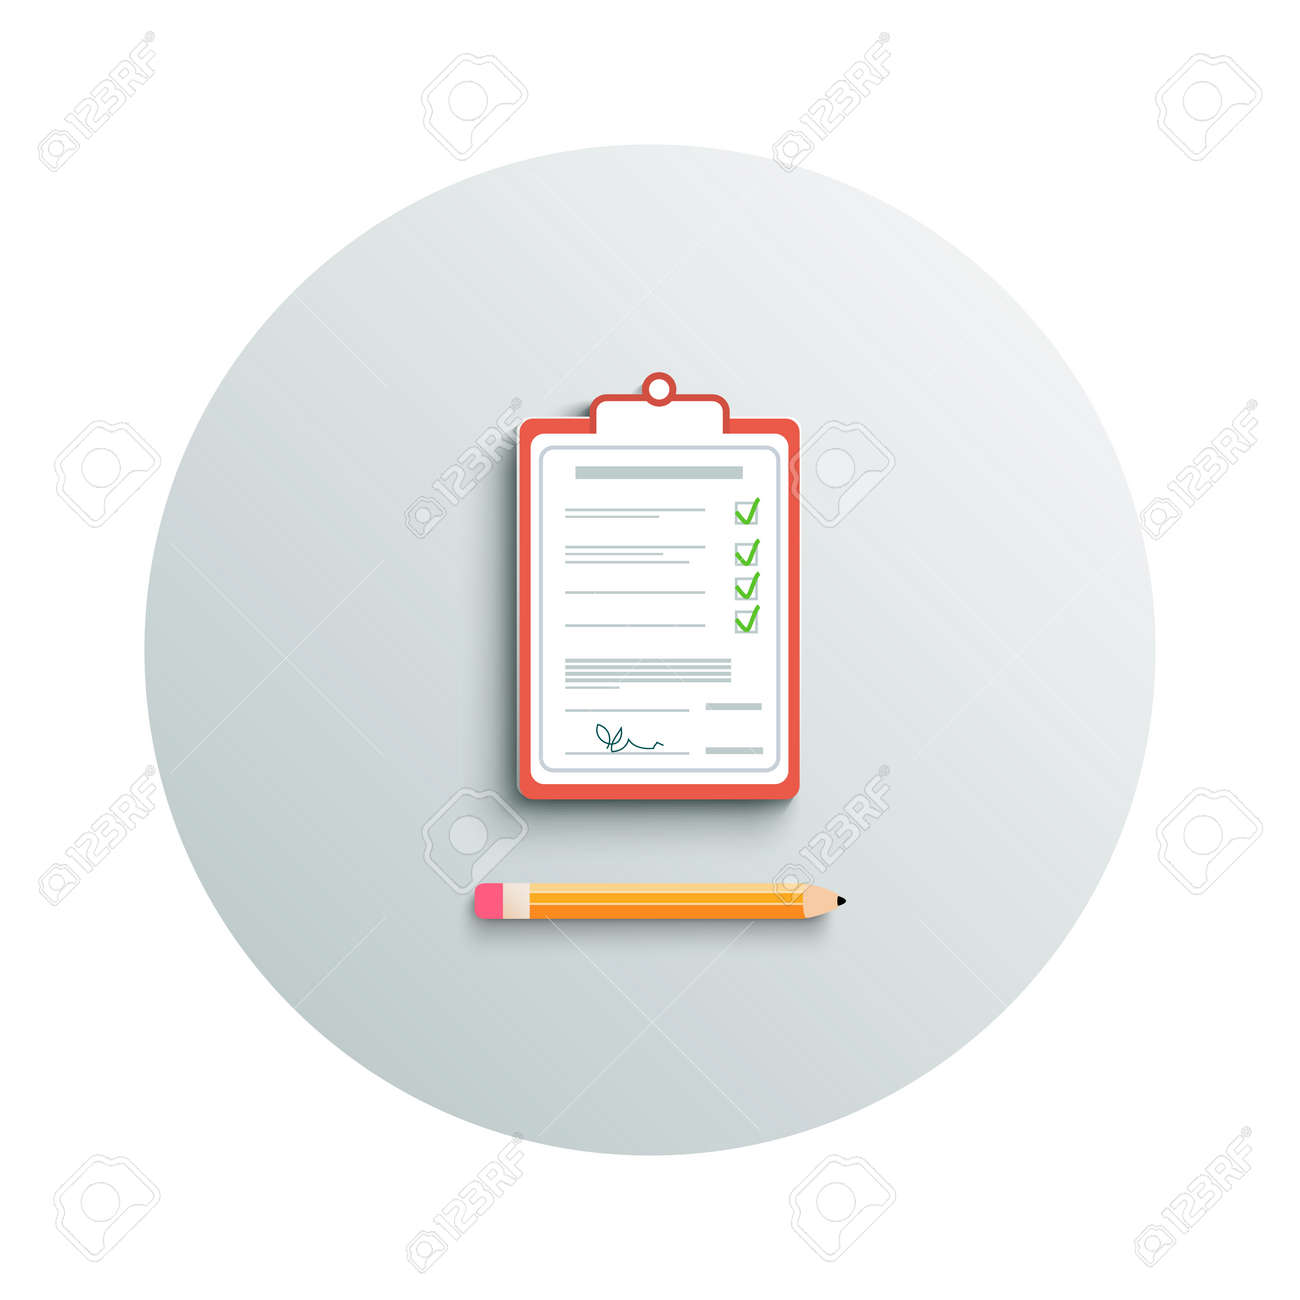 Detailed modern app icon of clipboard and pencil business concept on white background. Office and business work elements Stock Vector - 28592742